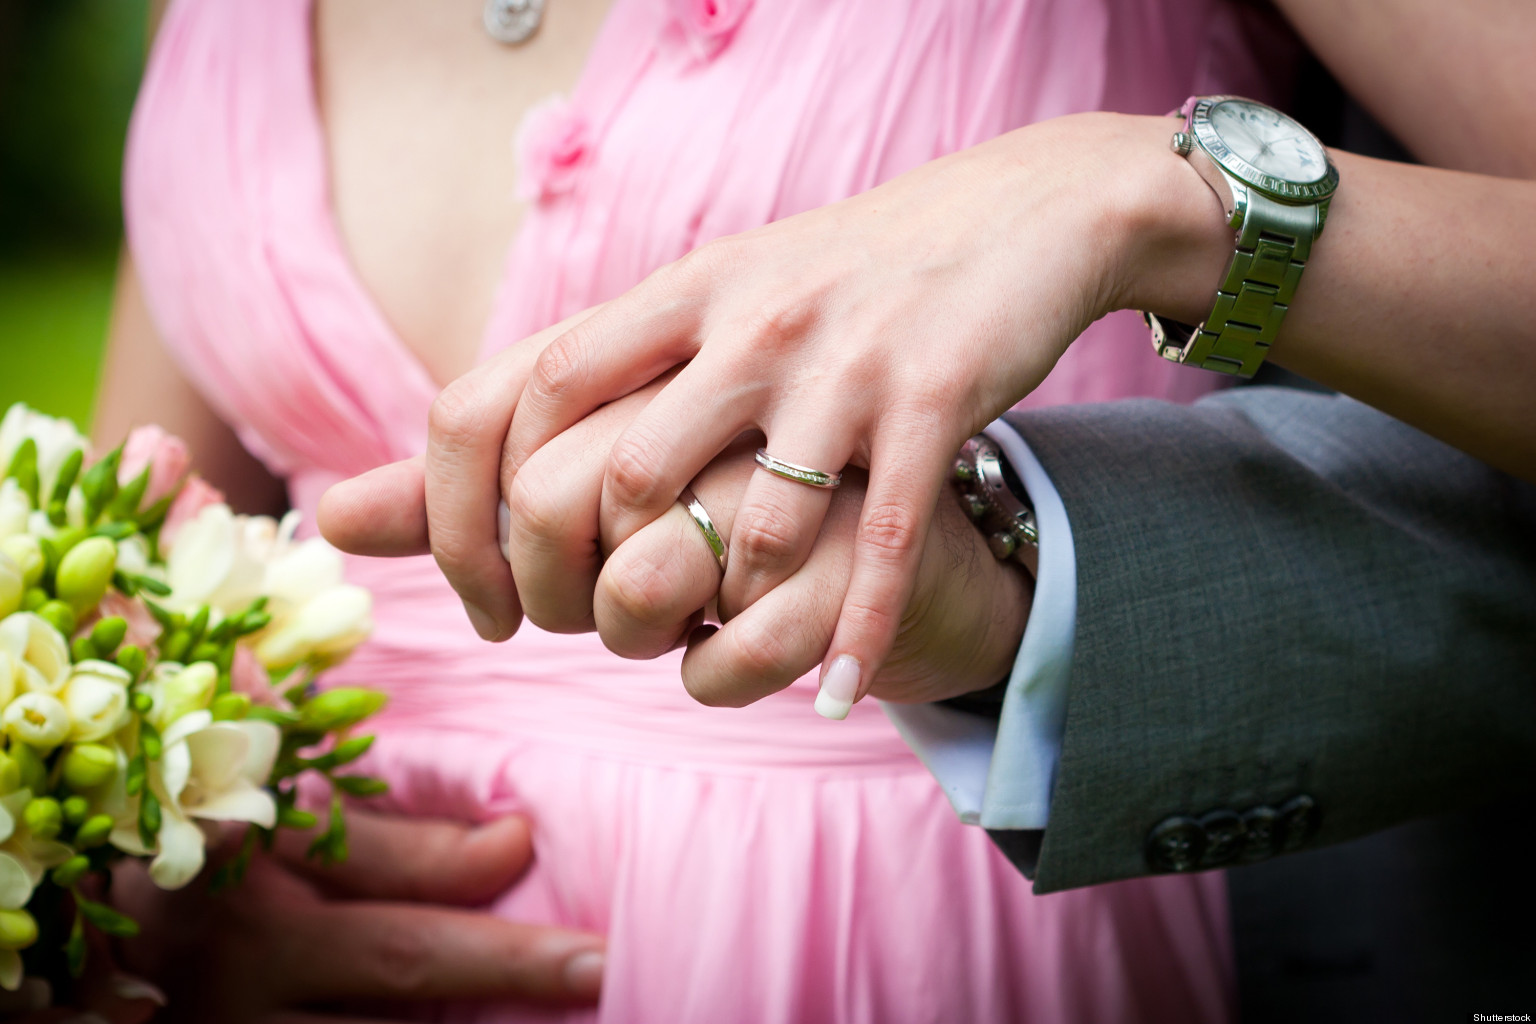 An Ironic, Low-Key, Unconventional Wedding Is Still A Wedding | HuffPost